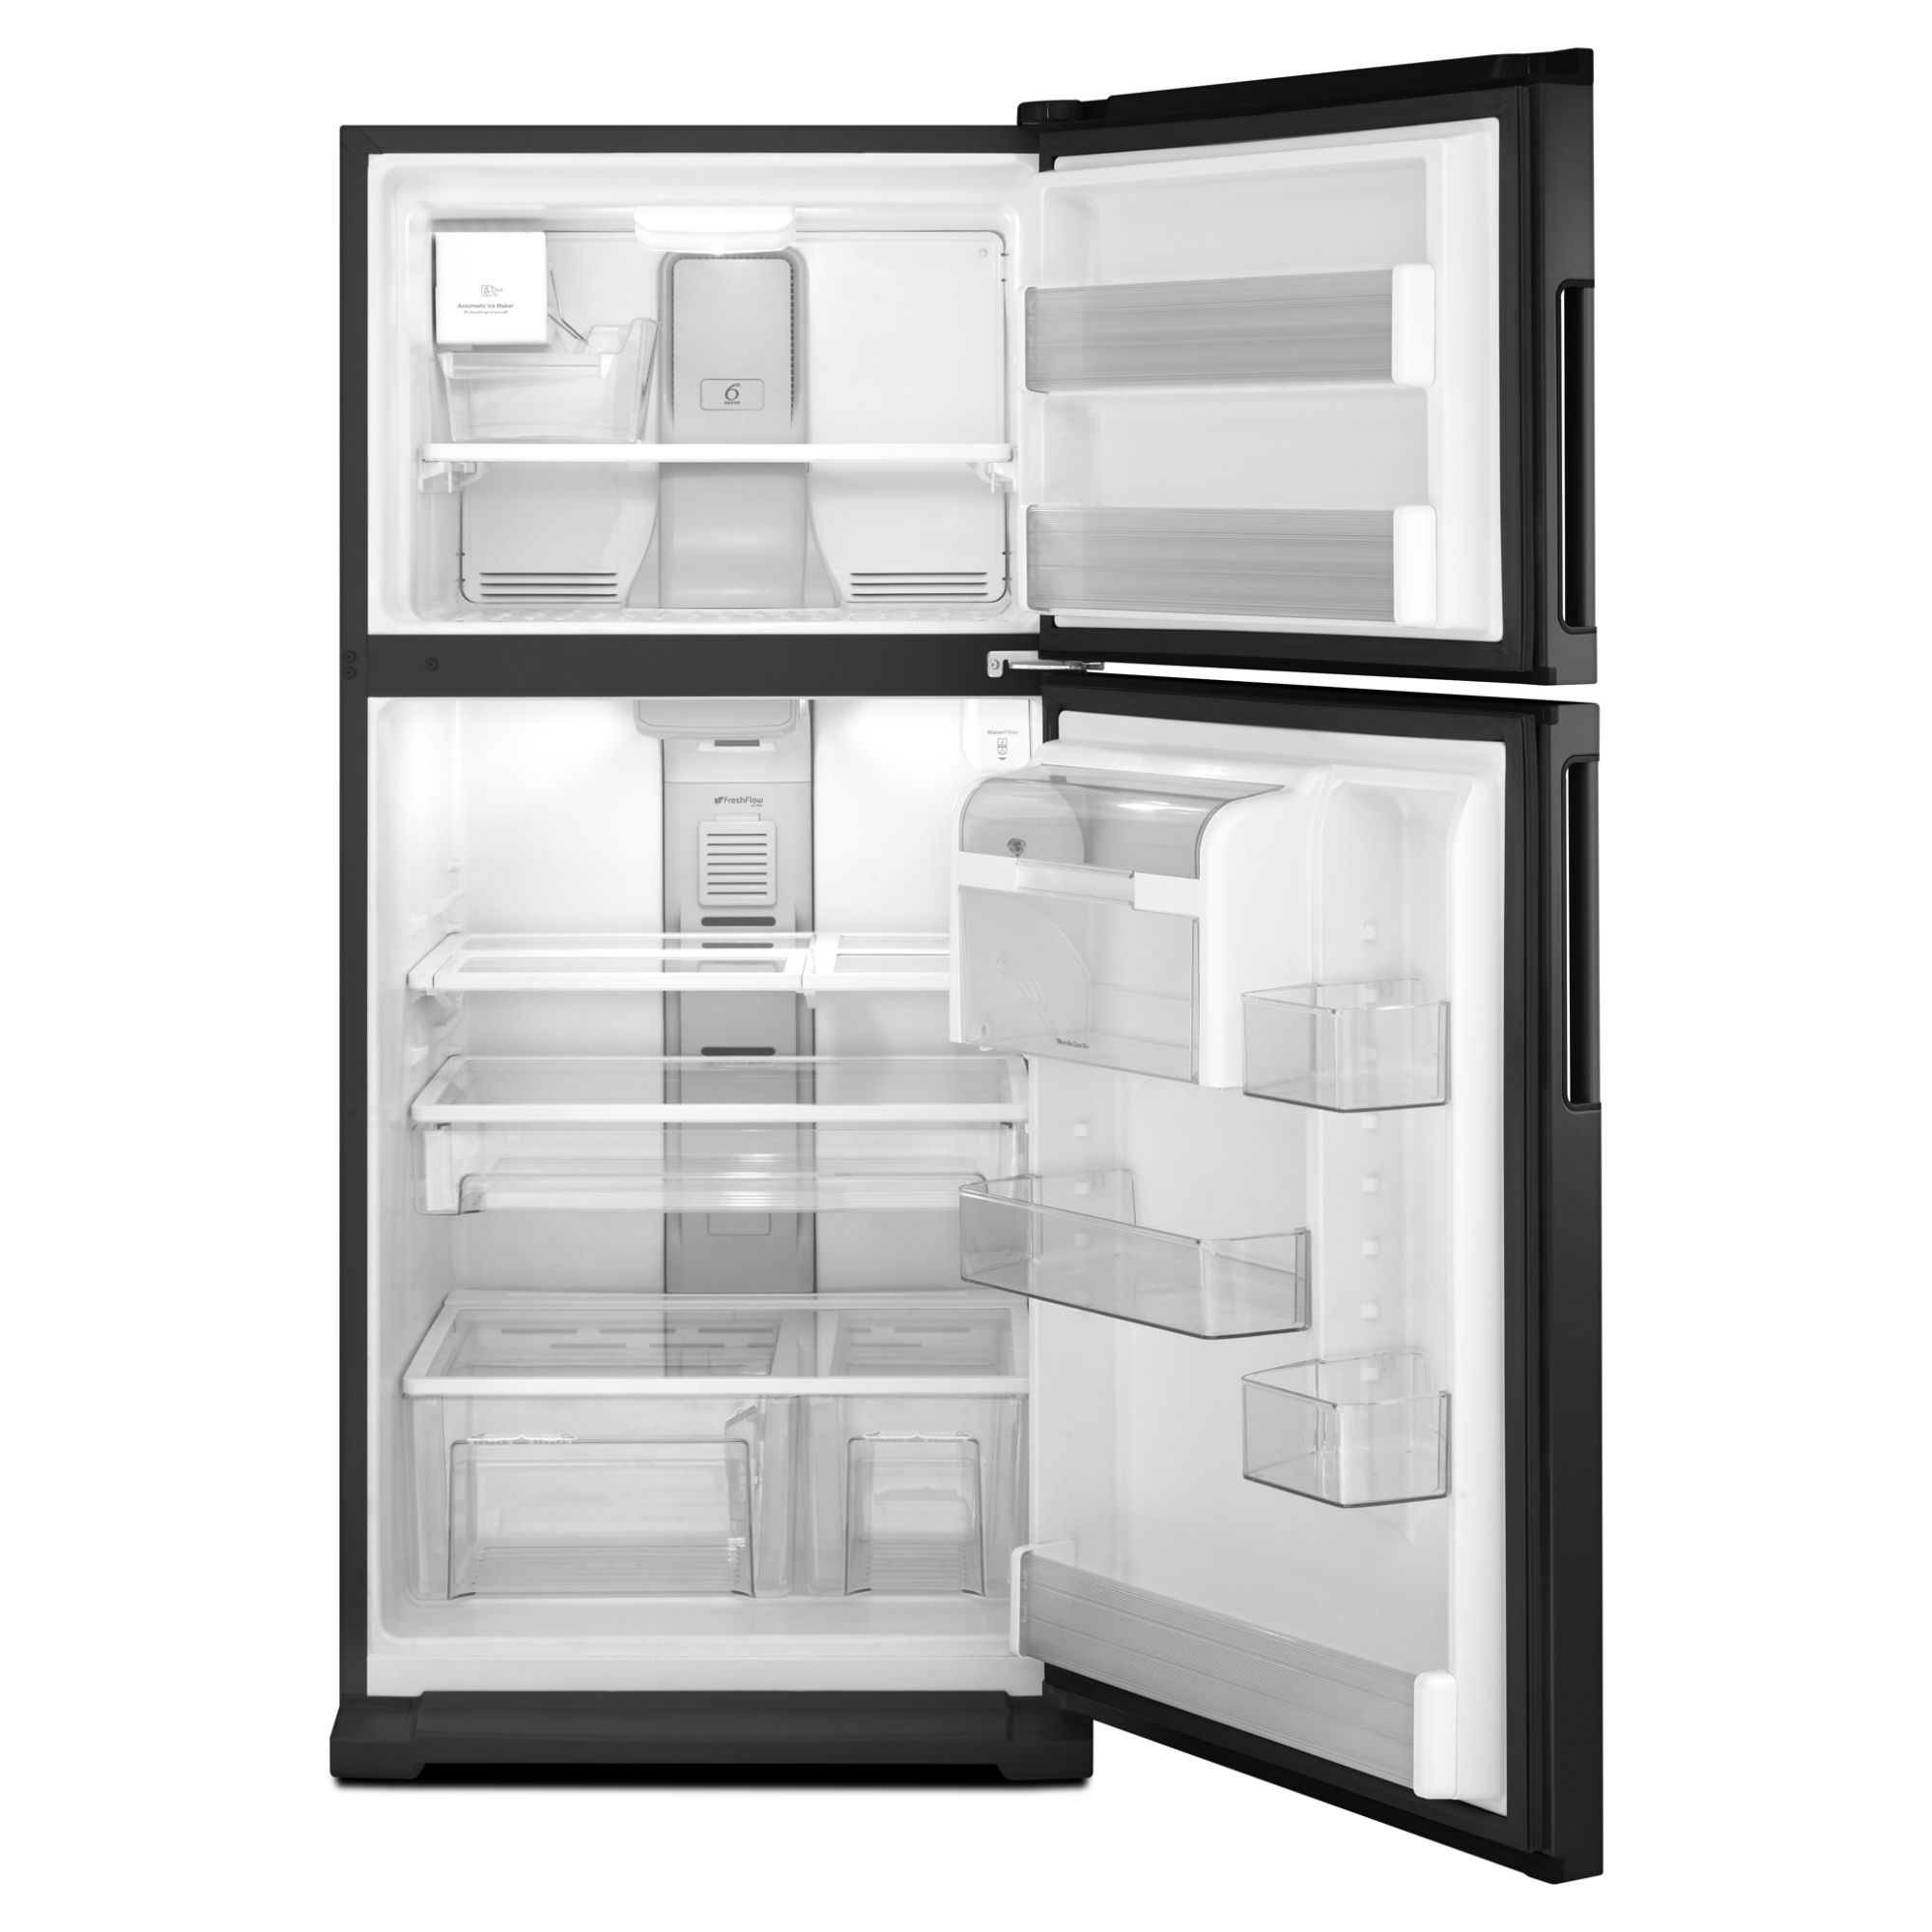 Whirlpool 21.1 cu. ft. Top-Freezer Refrigerator w/ Exterior Water Dispenser - Black